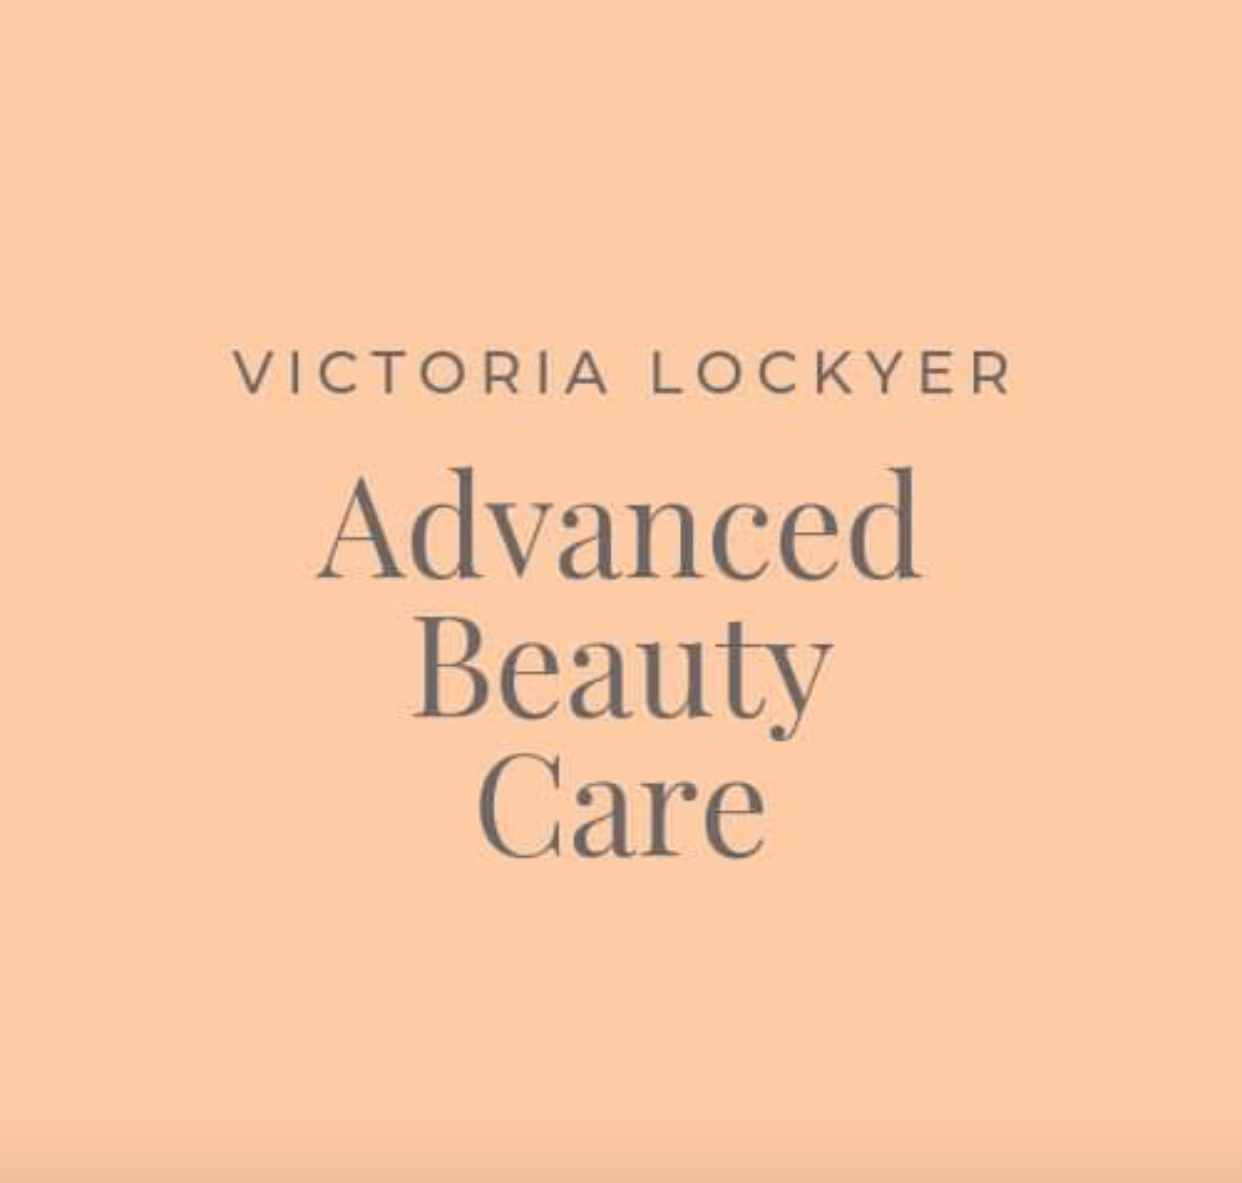 Victoria Lockyer Advanced Beauty Care  logo